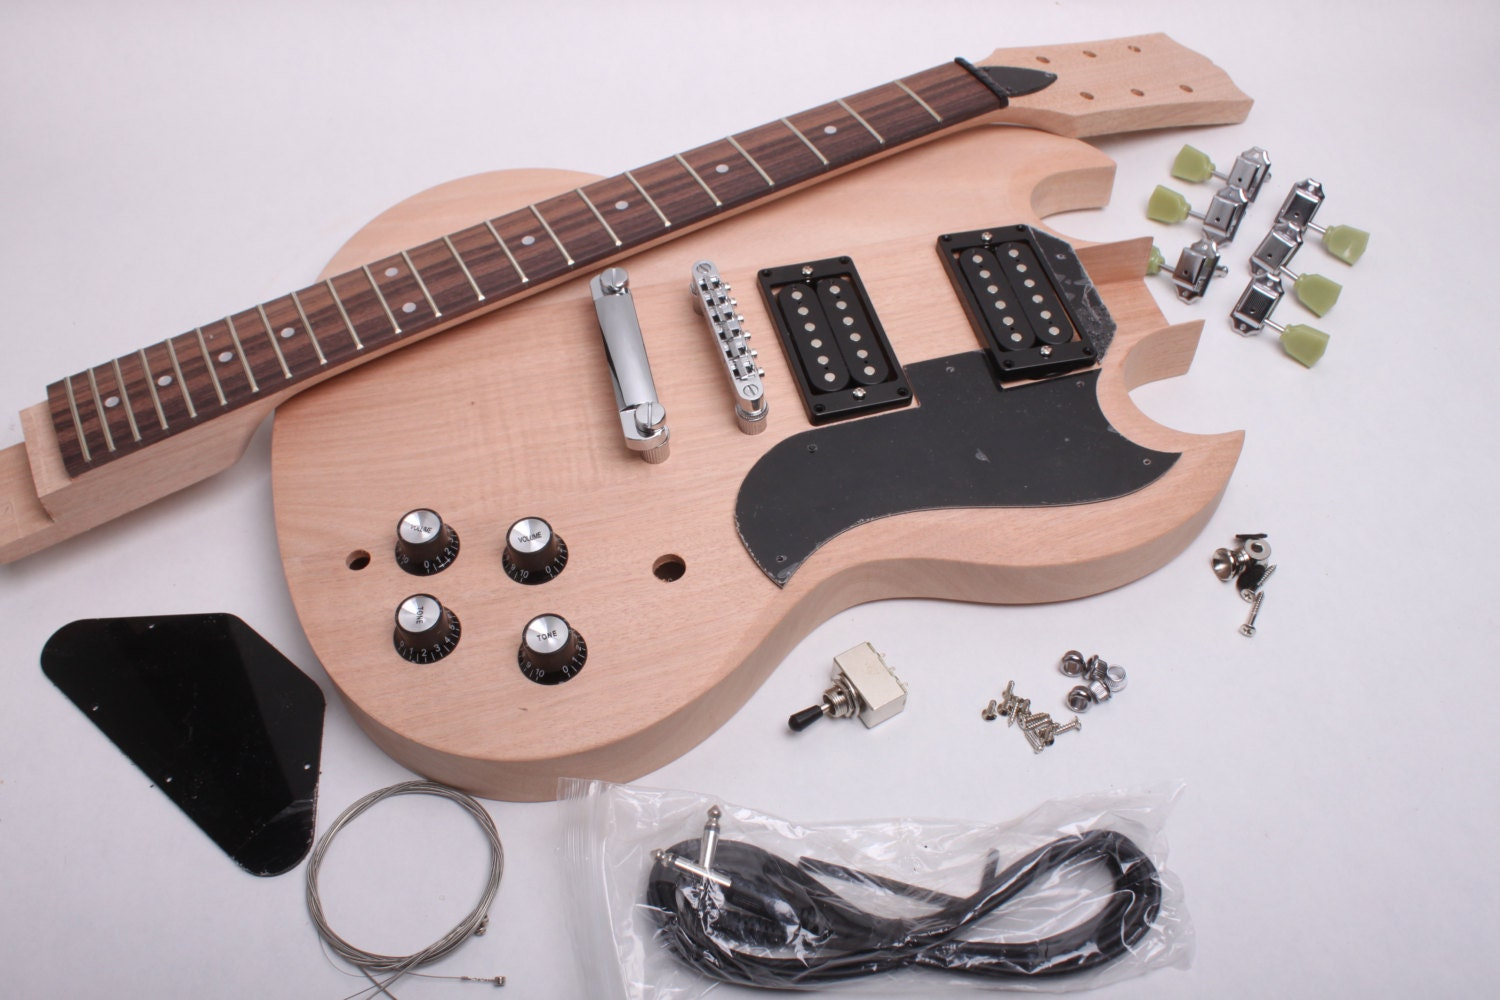 build your own electric guitar kit ess gee style by byoguitar. Black Bedroom Furniture Sets. Home Design Ideas